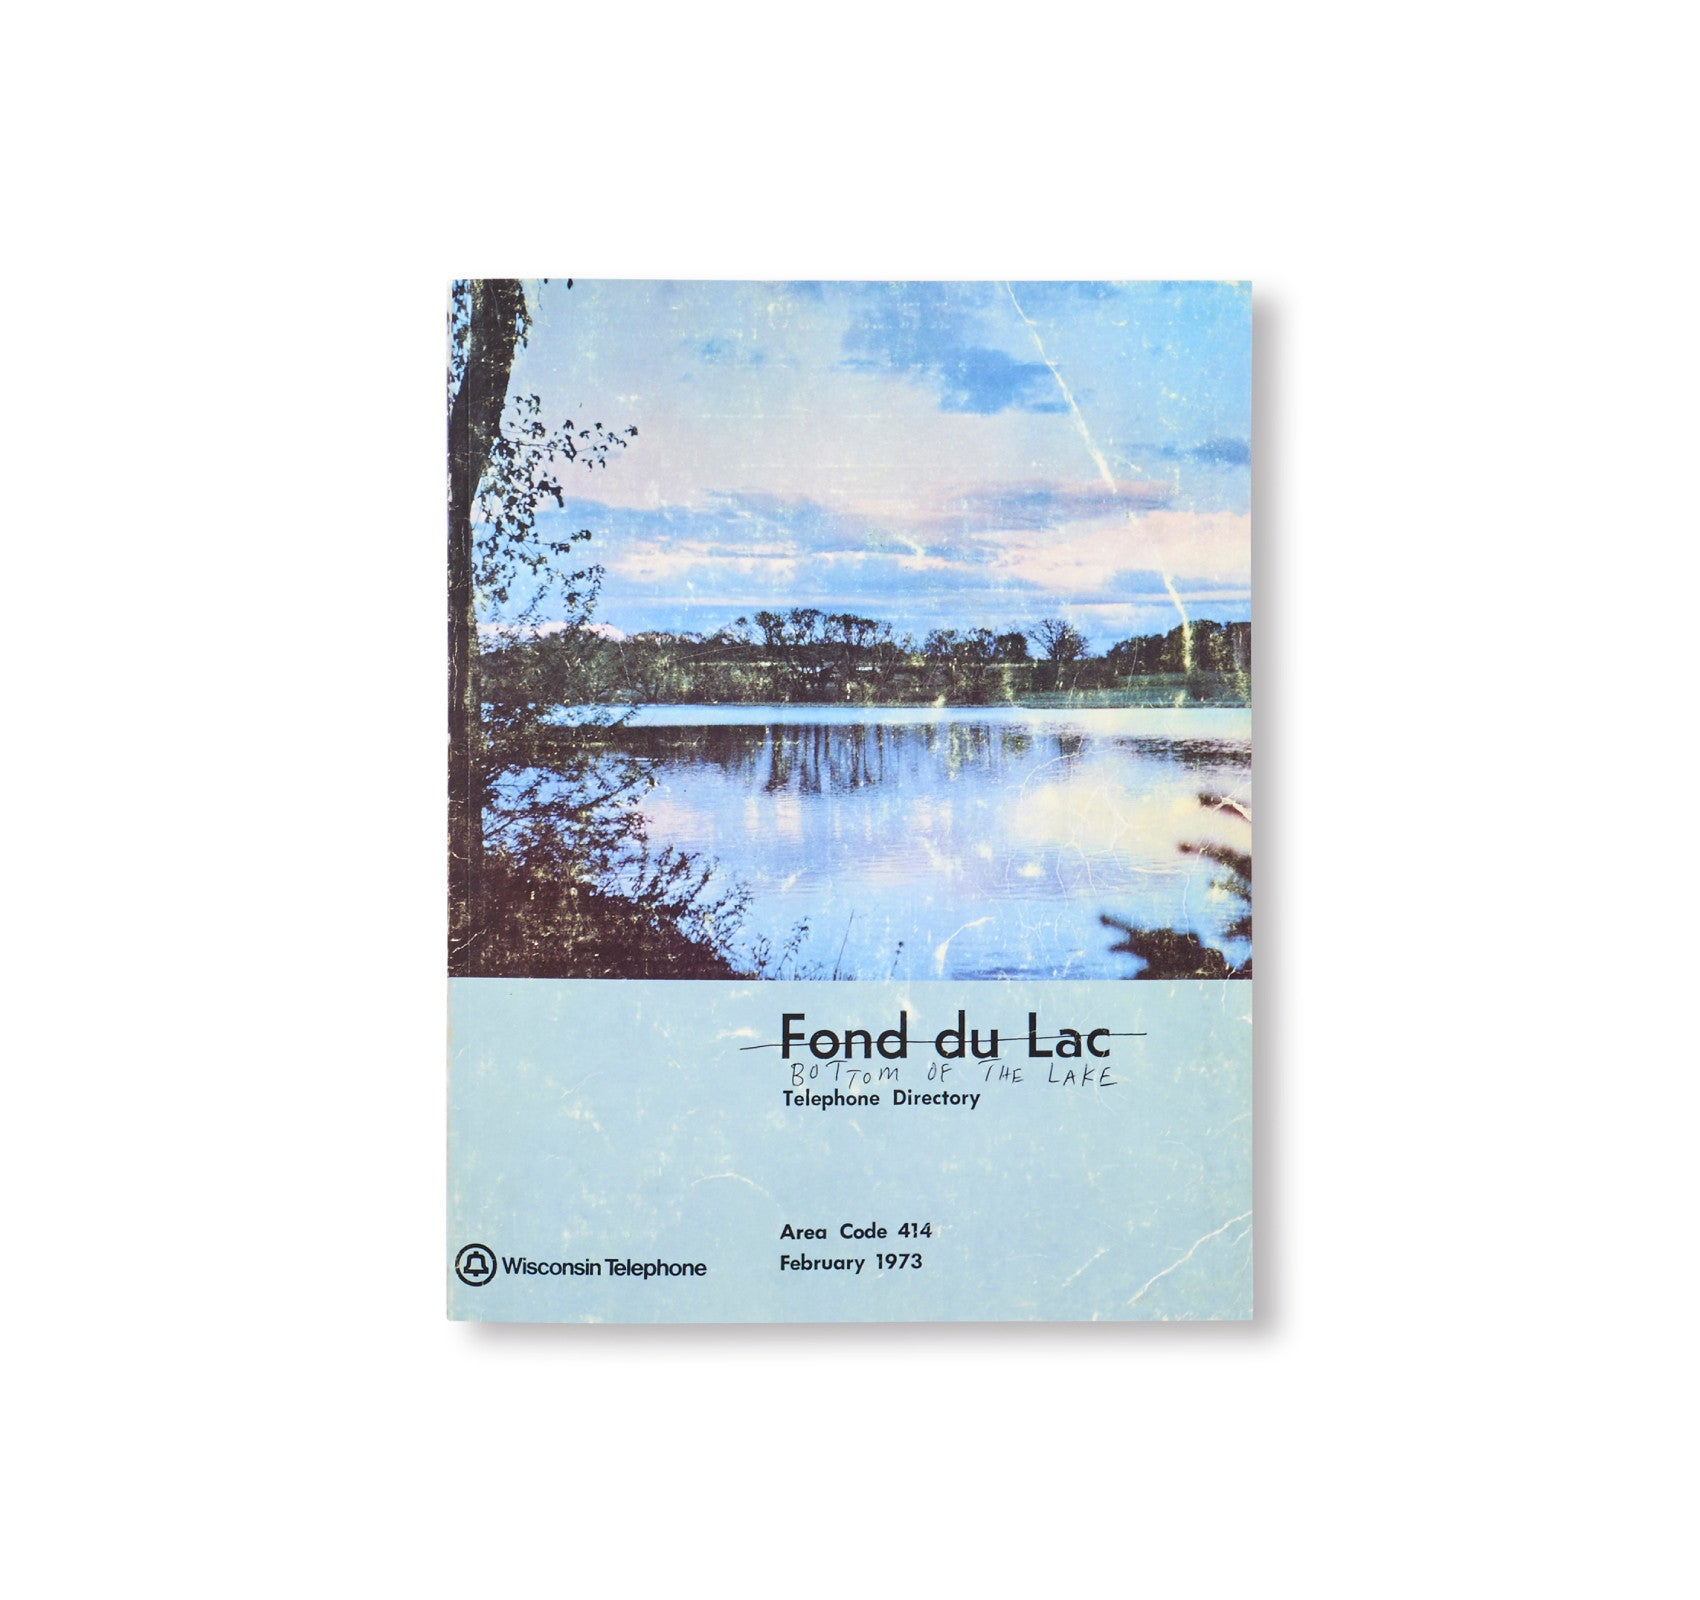 FOND DU LAC / BOTTOM OF THE LAKE by Christian Patterson